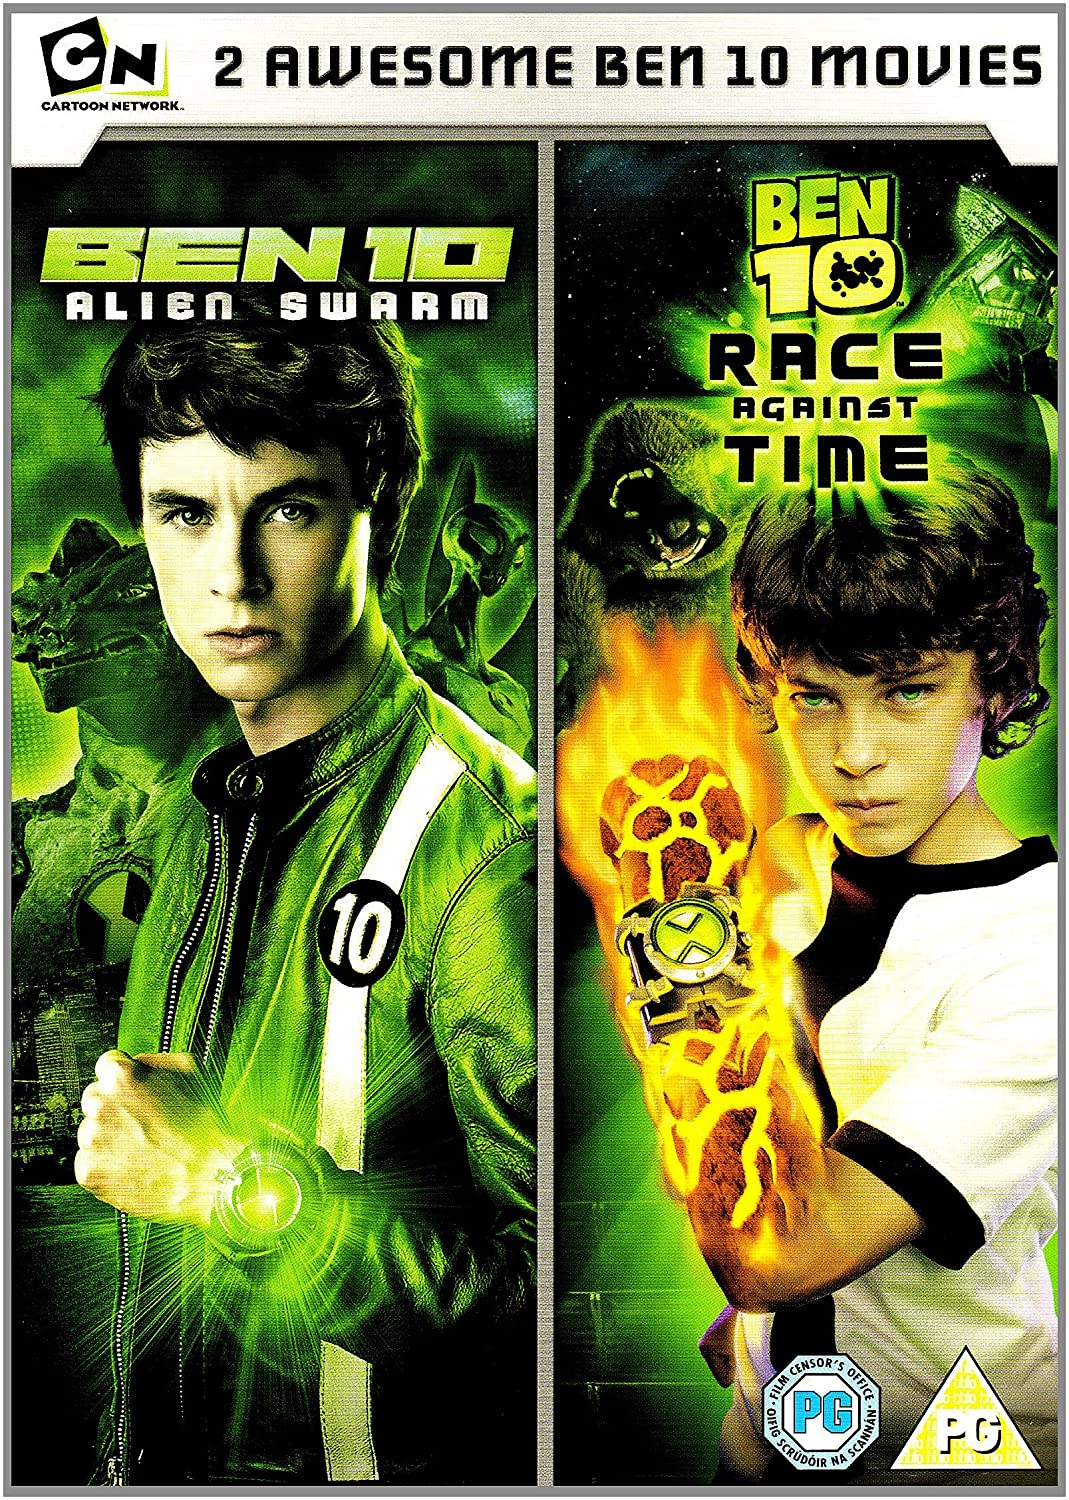 ben 10 race against time movie free download